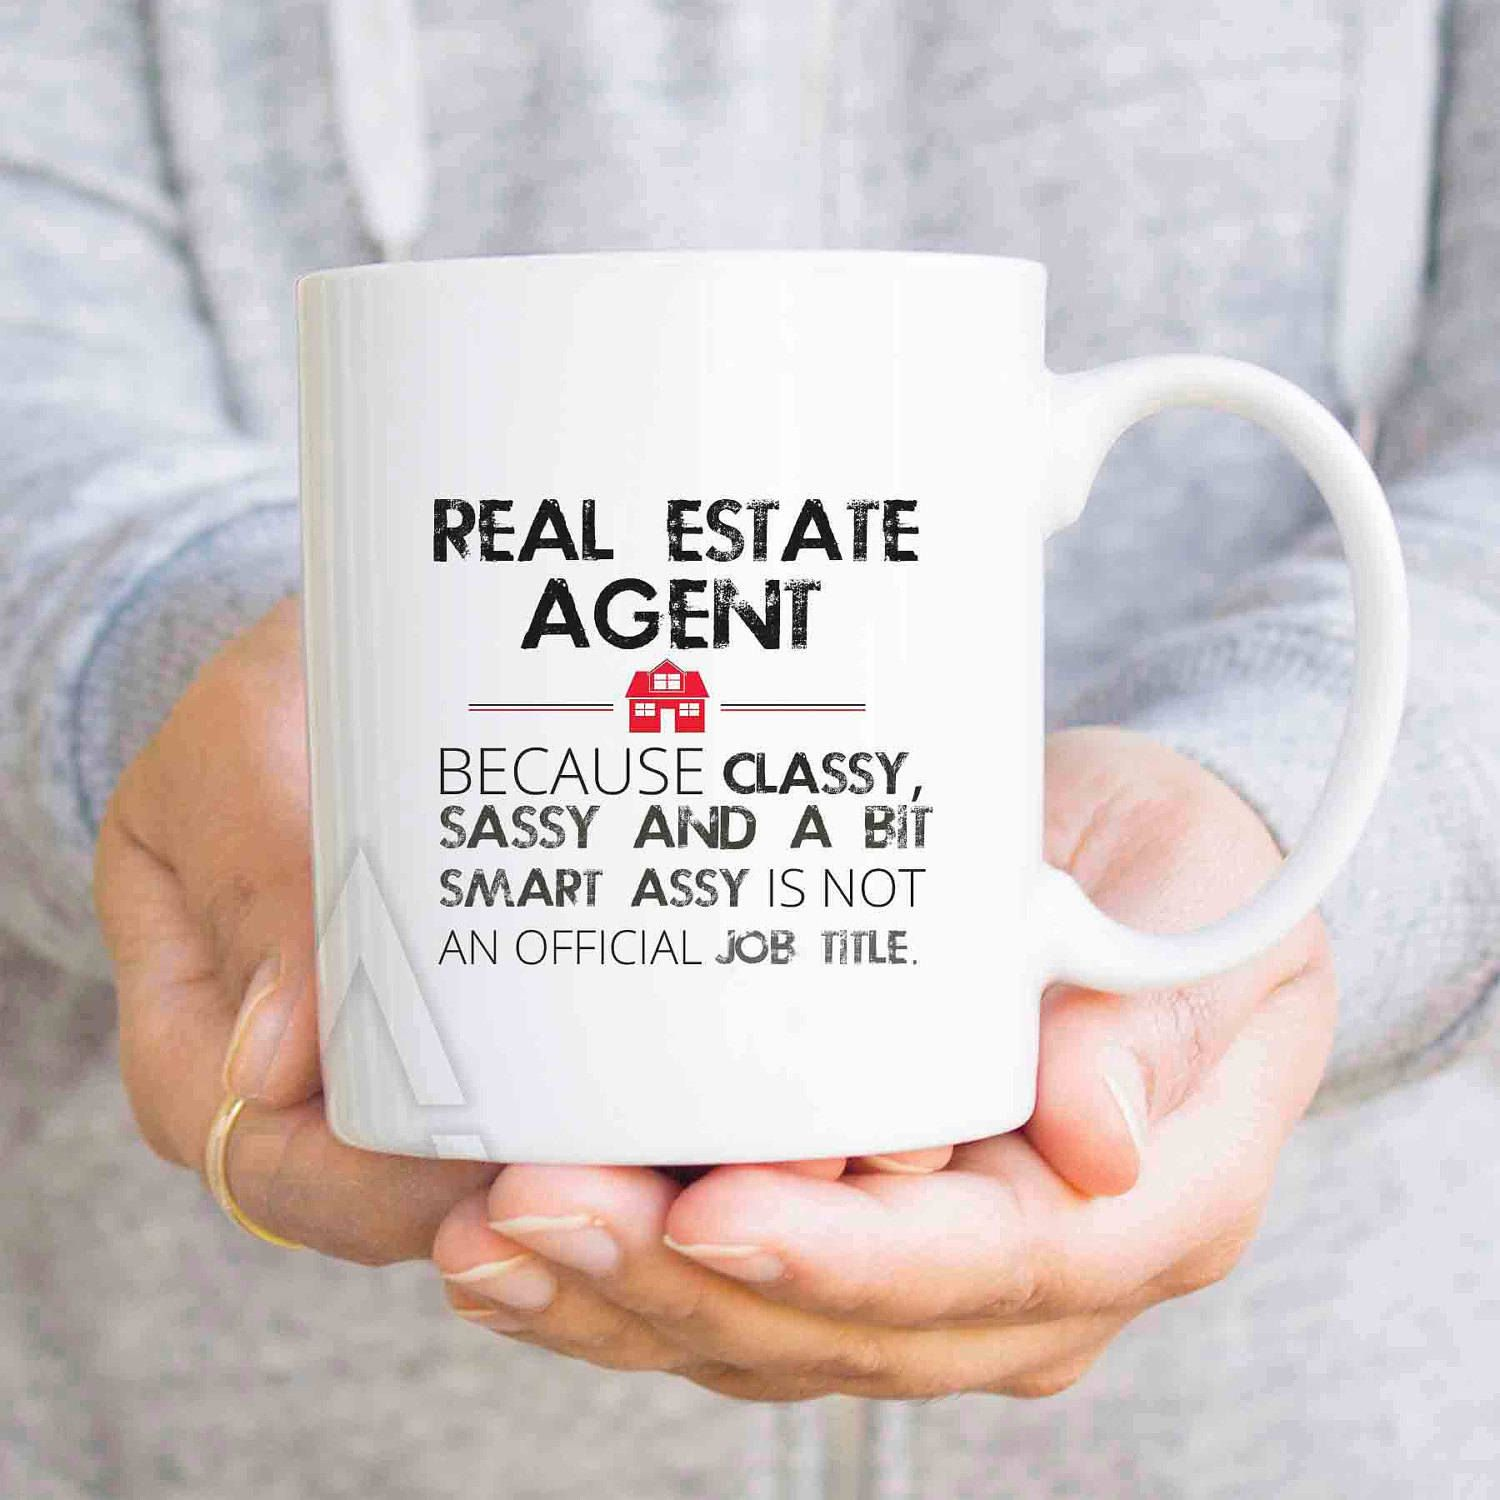 Realtor Gift Thank You Gifts Real Estate Agent Funny Coffee Mugs Real Estate Closing Gifts Real Estate Agent Open House Gifts Mu486 Real Estate Closing Gifts Realtor Gifts House Gifts